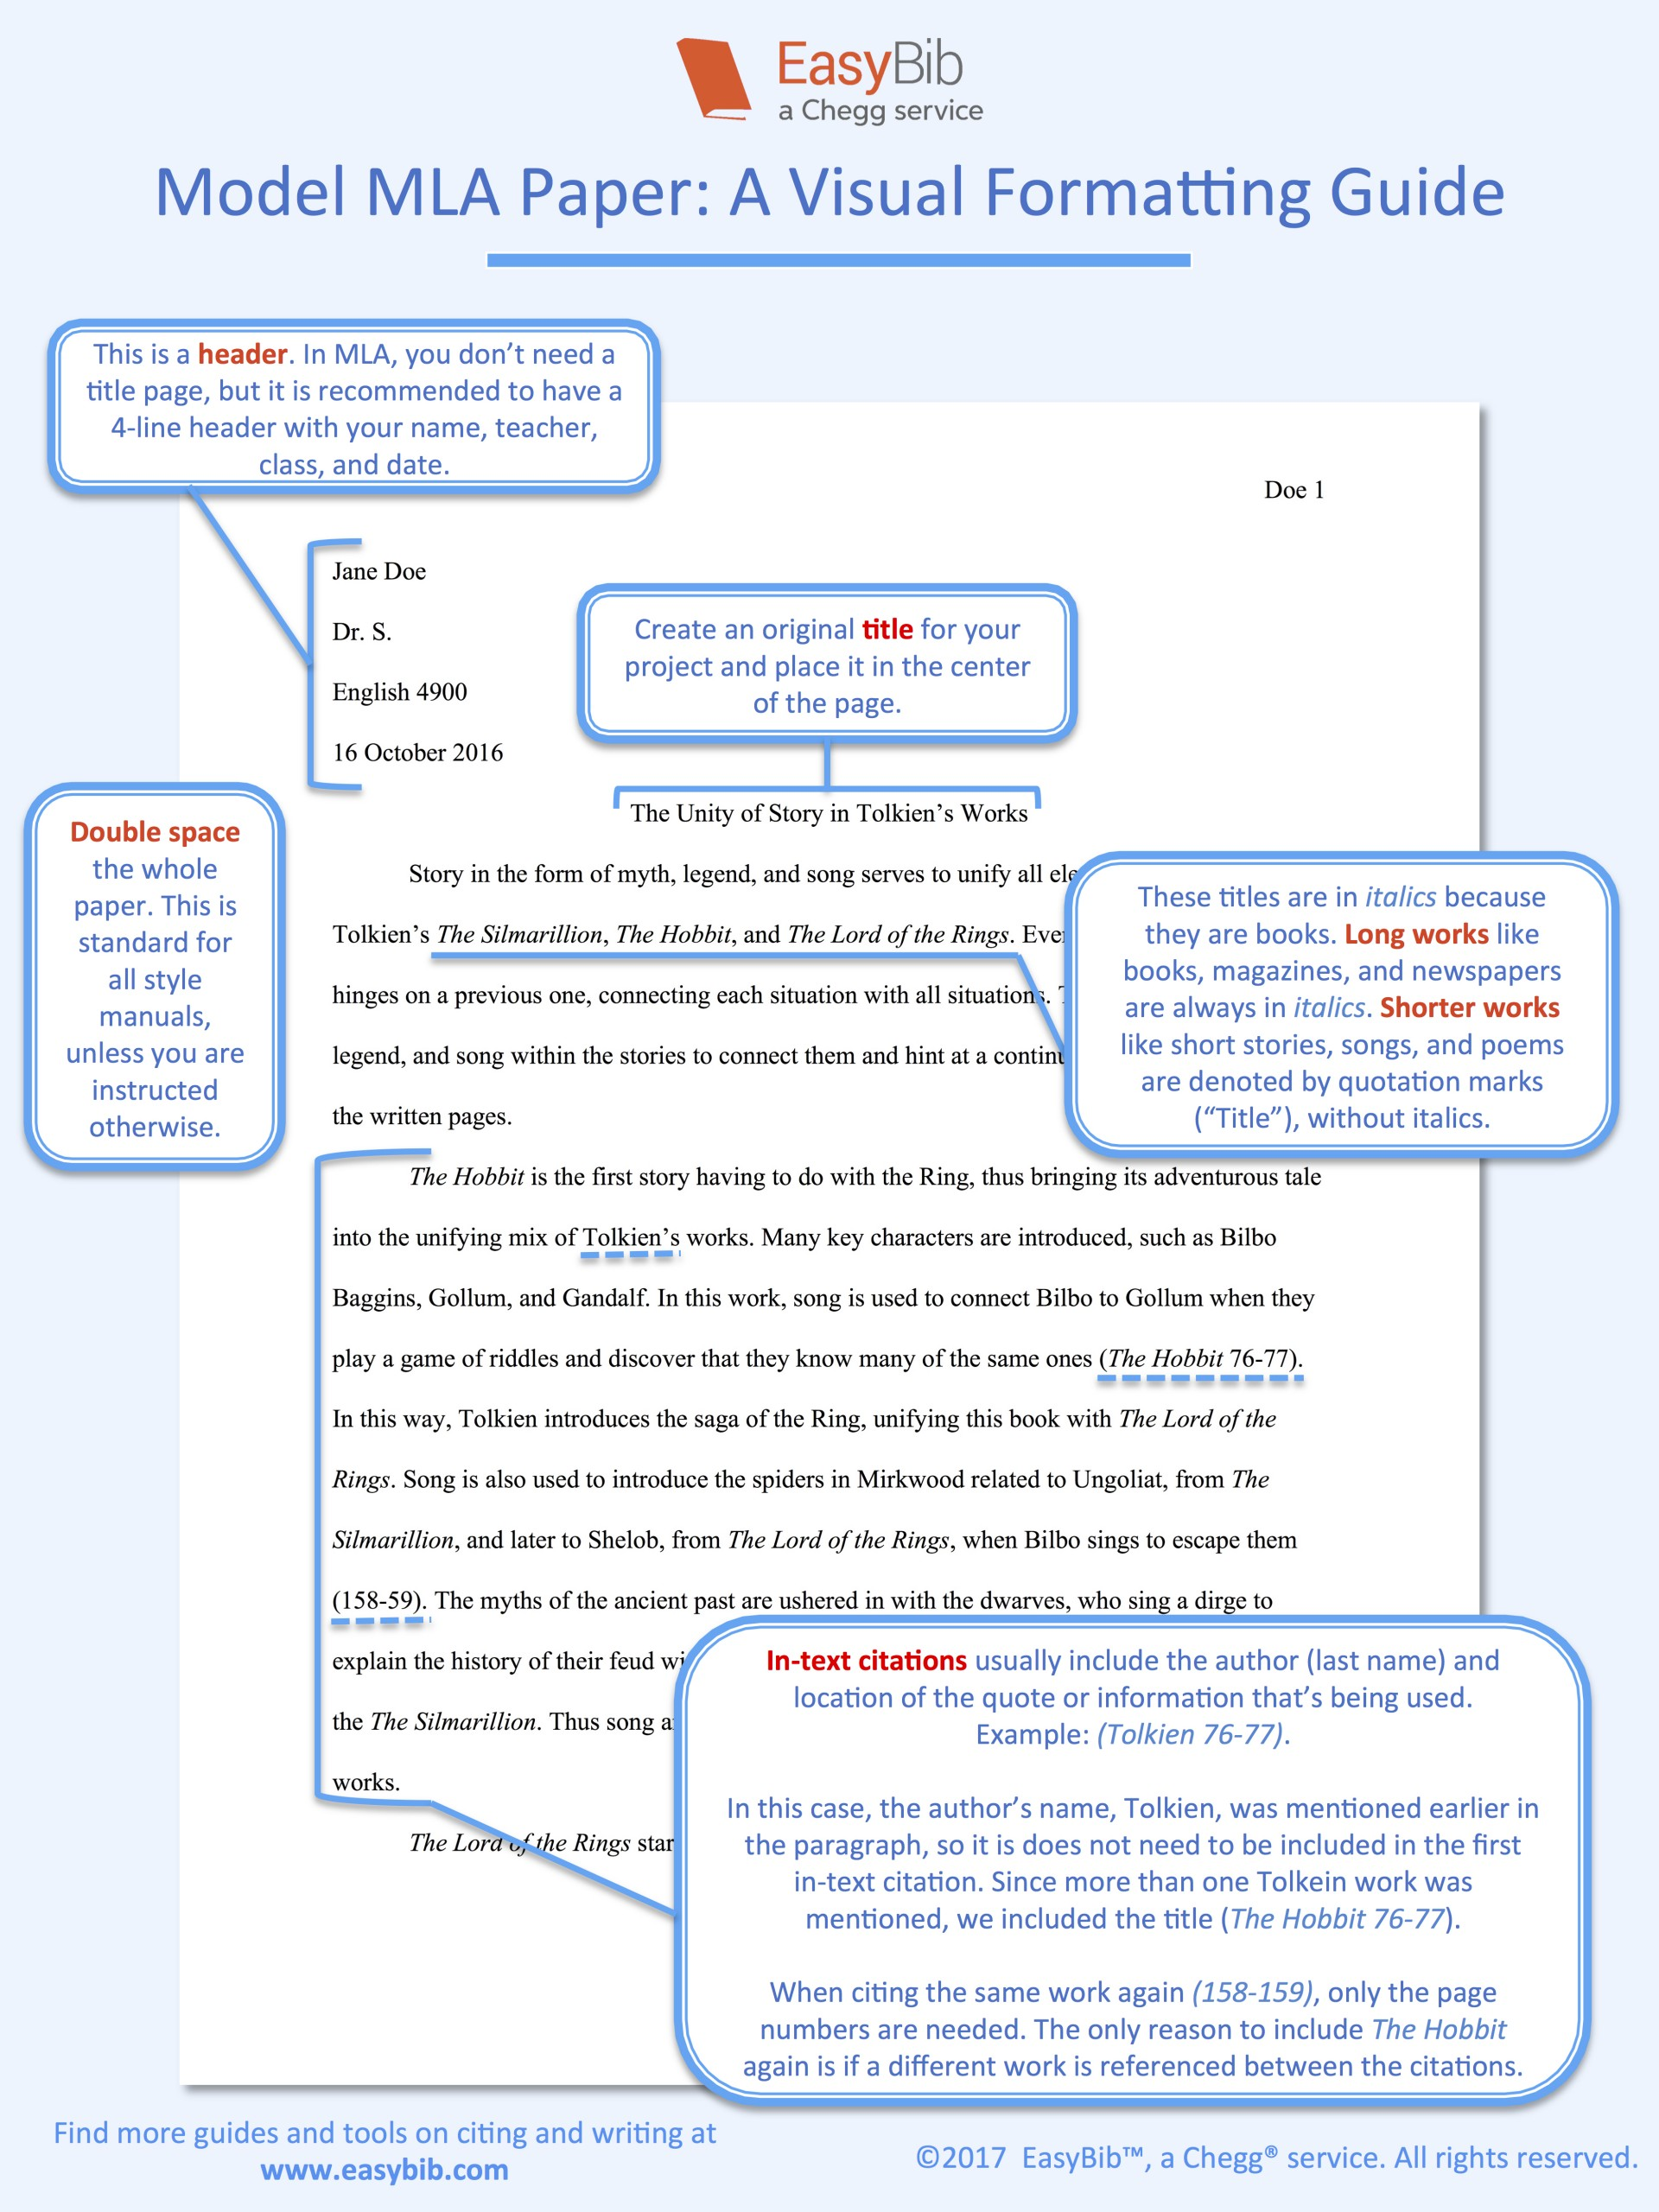 009 Model Mla Paper Format For Research Imposing A Style Example Of Outline Sample Owl Writing Using 1920